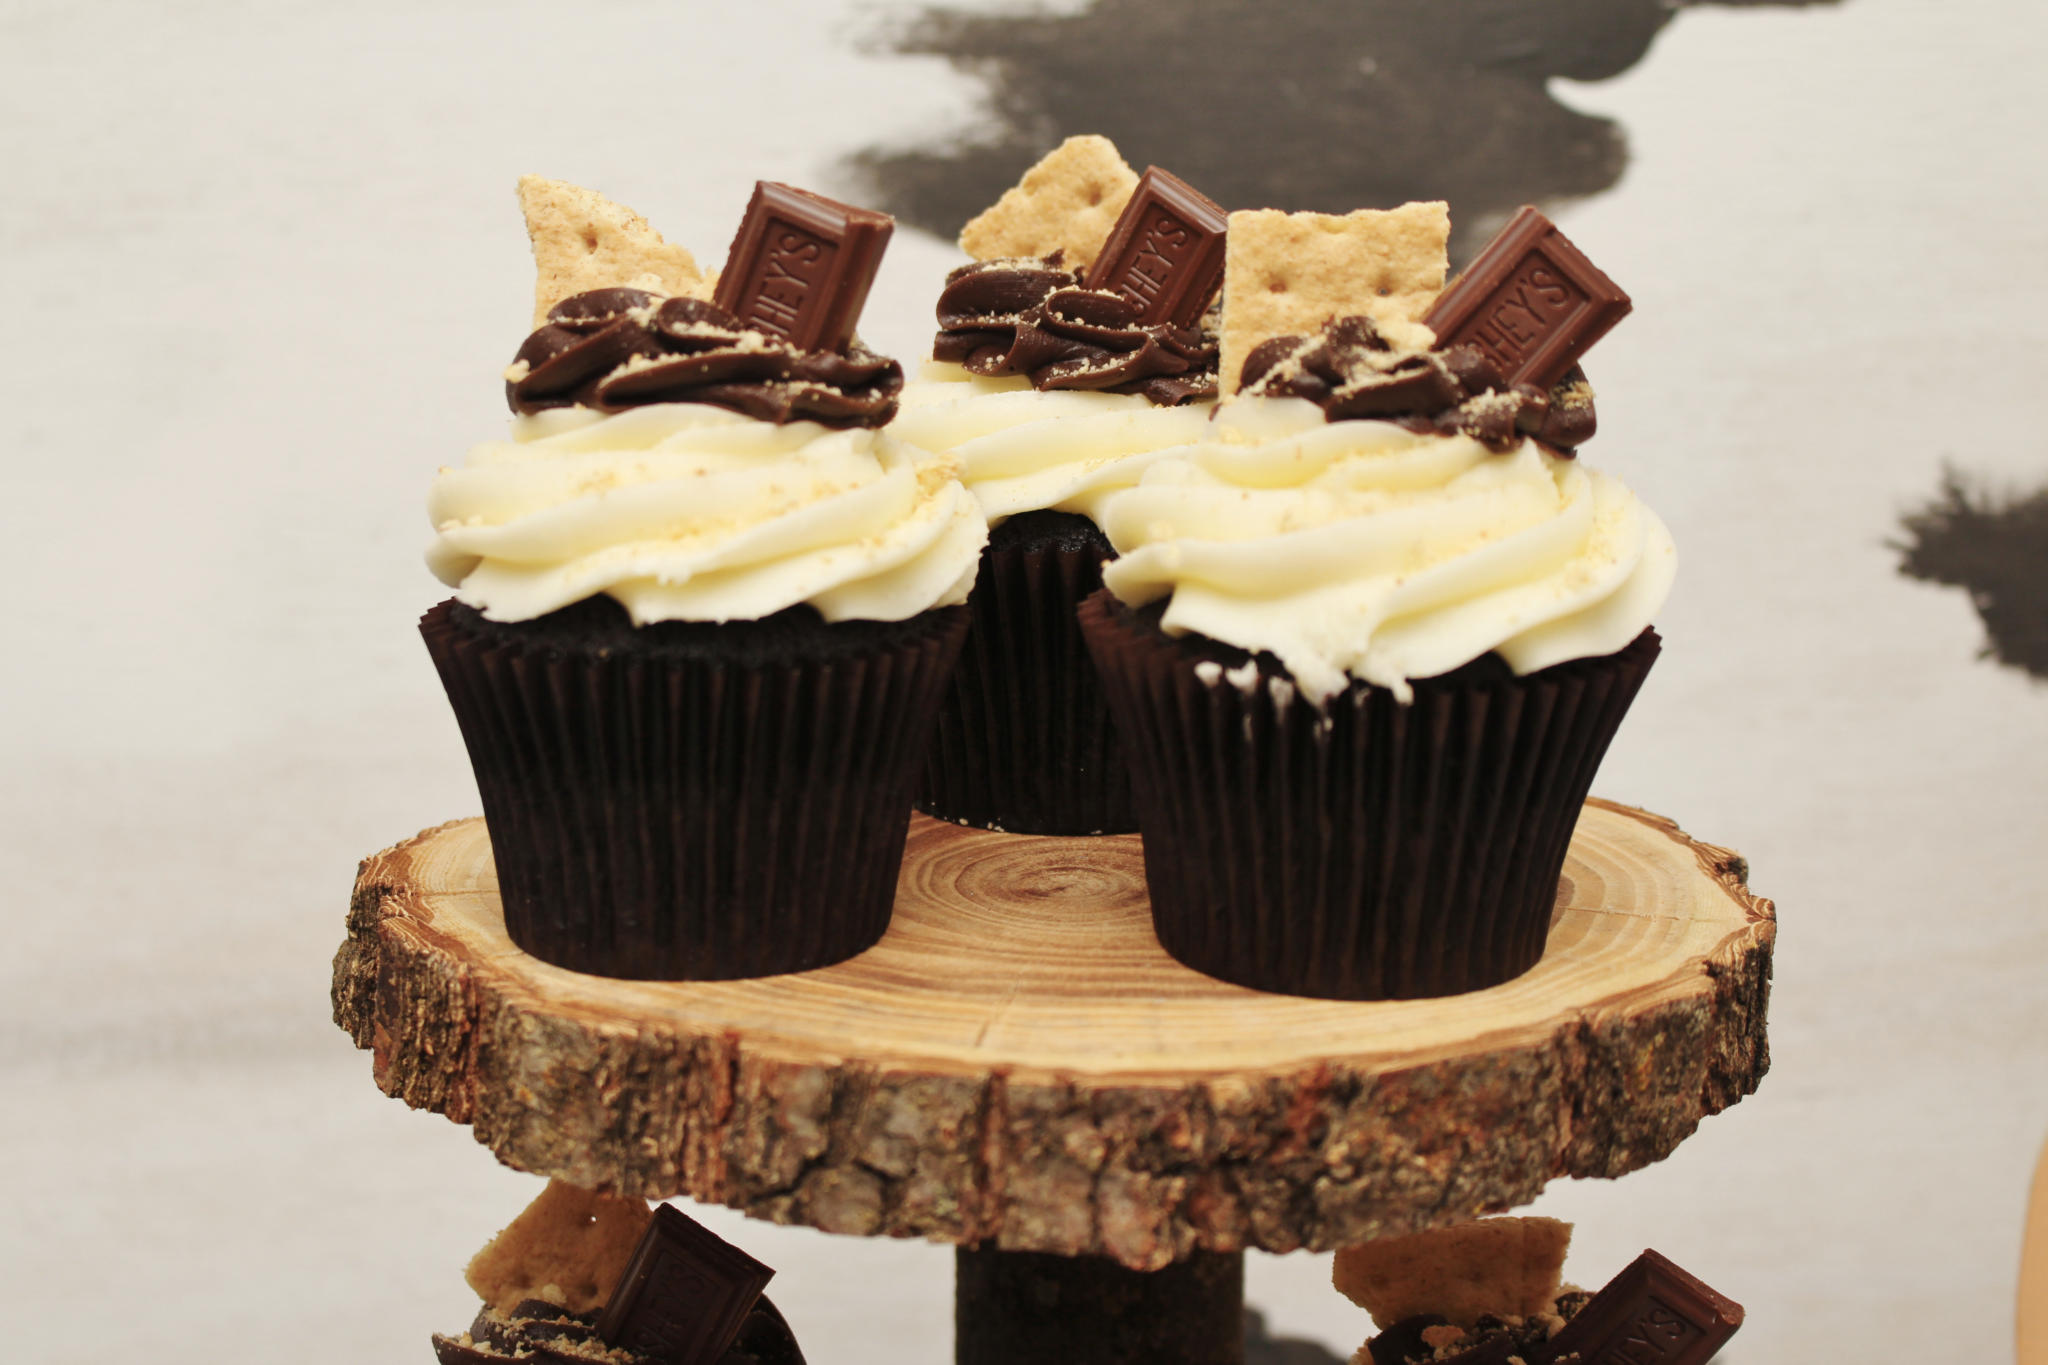 How about serving s'mores cupcakes for your child's Woodland Birthday Party? Click for 12 great ideas including Raccoon Apples and Tree Cakes for your rustic woodland party! See how to recreate this party styled by Crowning Details on www.funtoeatfruit.com. #woodlandparty #partydecor #birthdayparty #kidsbirthday #partyideas #partyinspiration #apples #ediblefavors